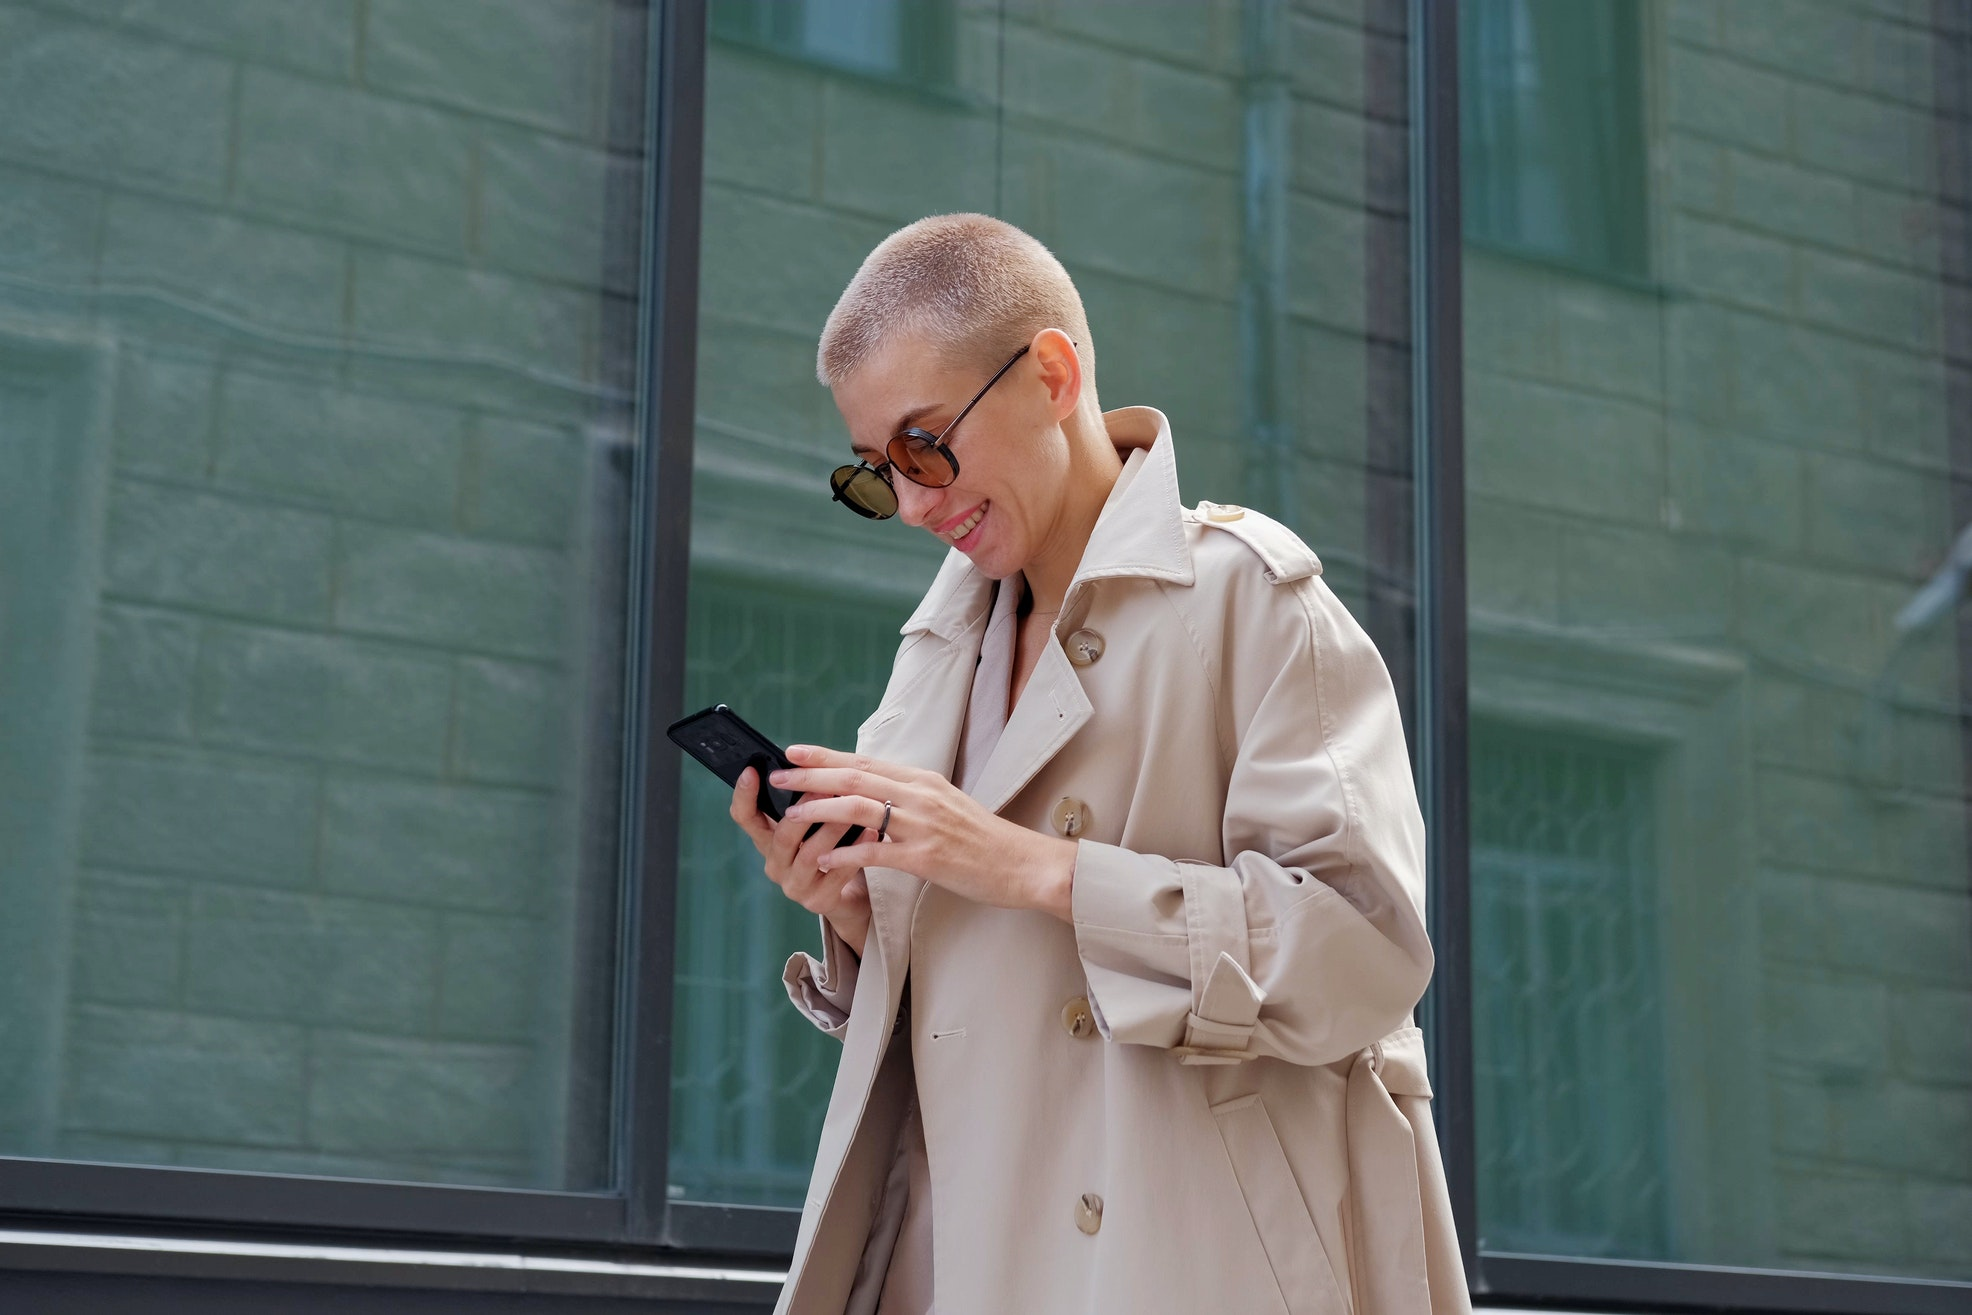 woman looking at types of content on her phone while walking